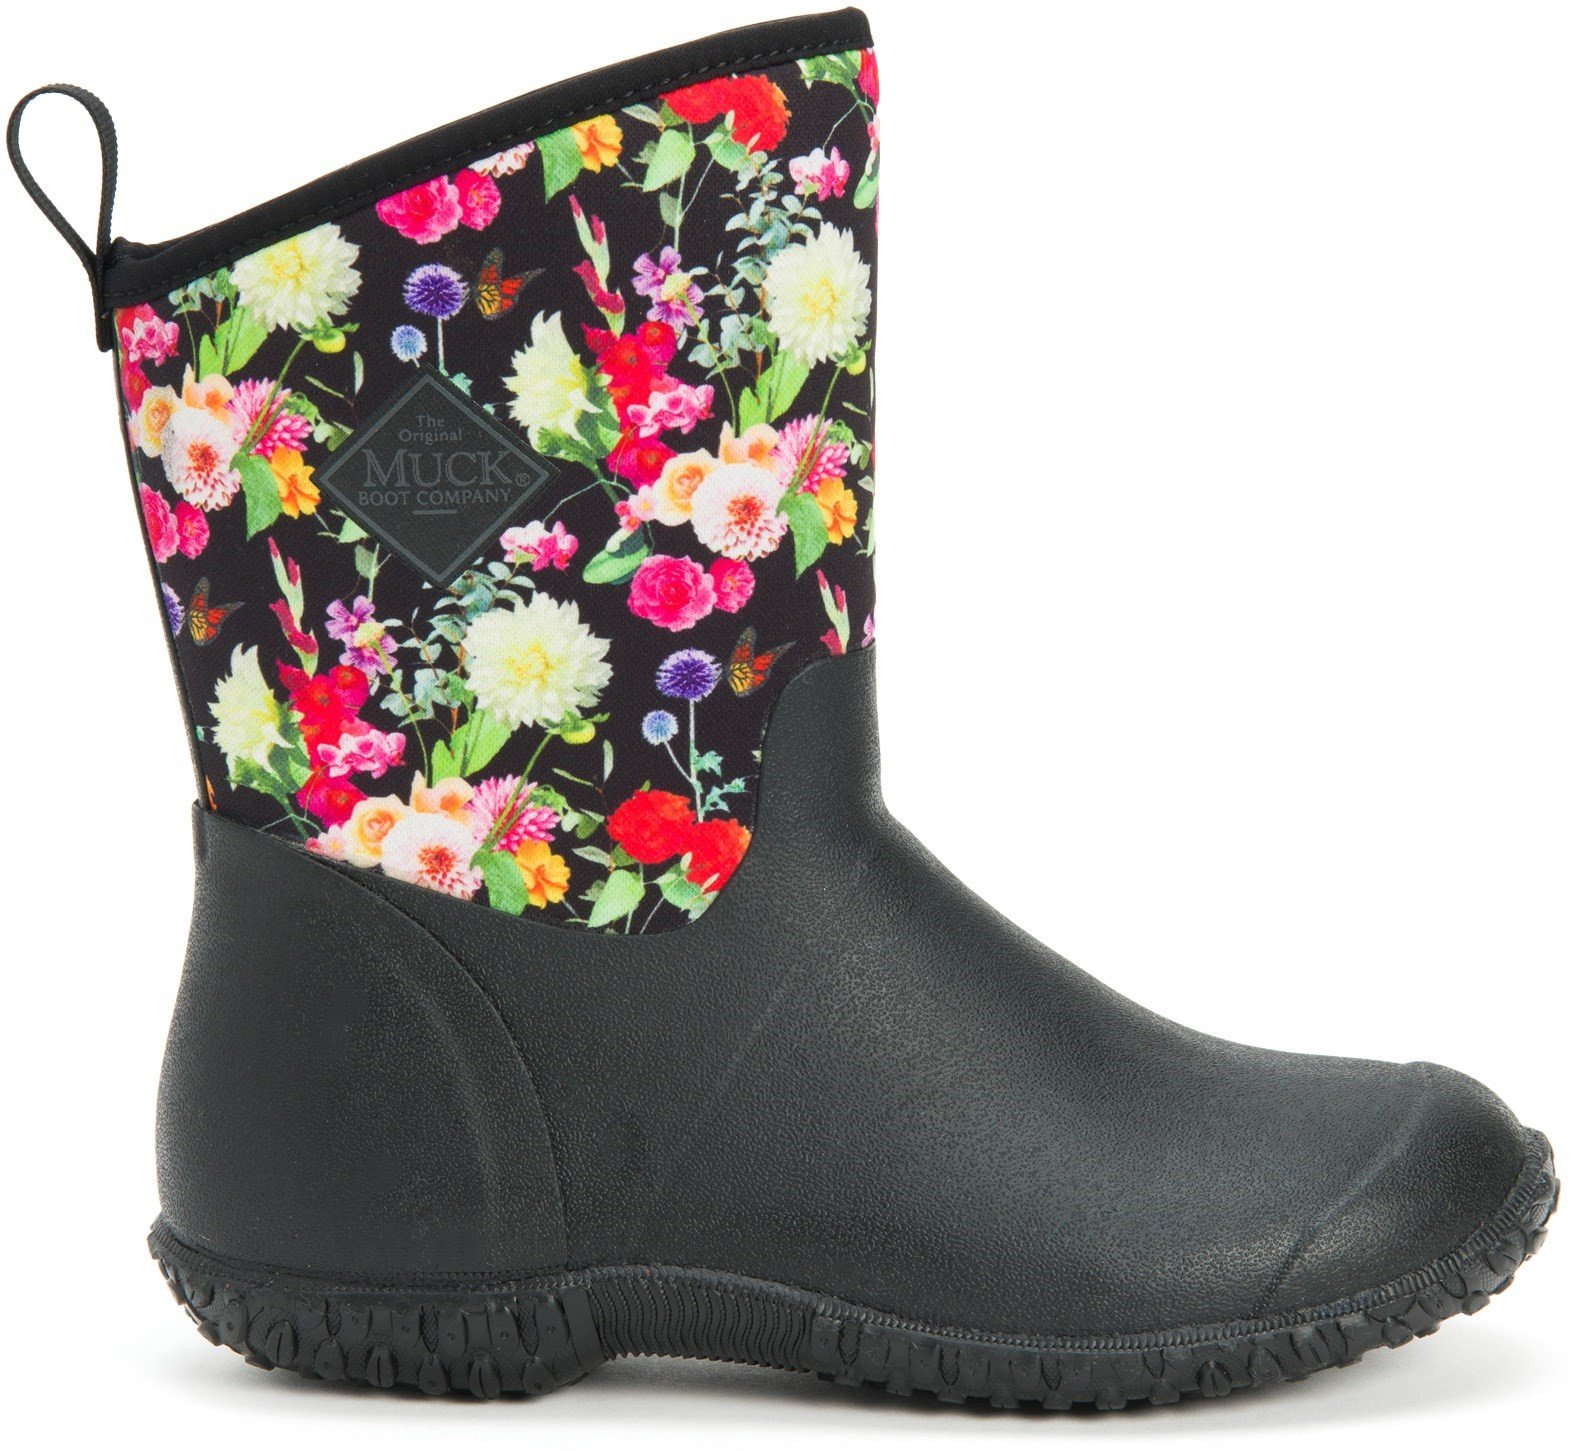 Muck Boots Unisex Muckster II Slip On Short Boot Various Colours 28899 - Night Floral 3